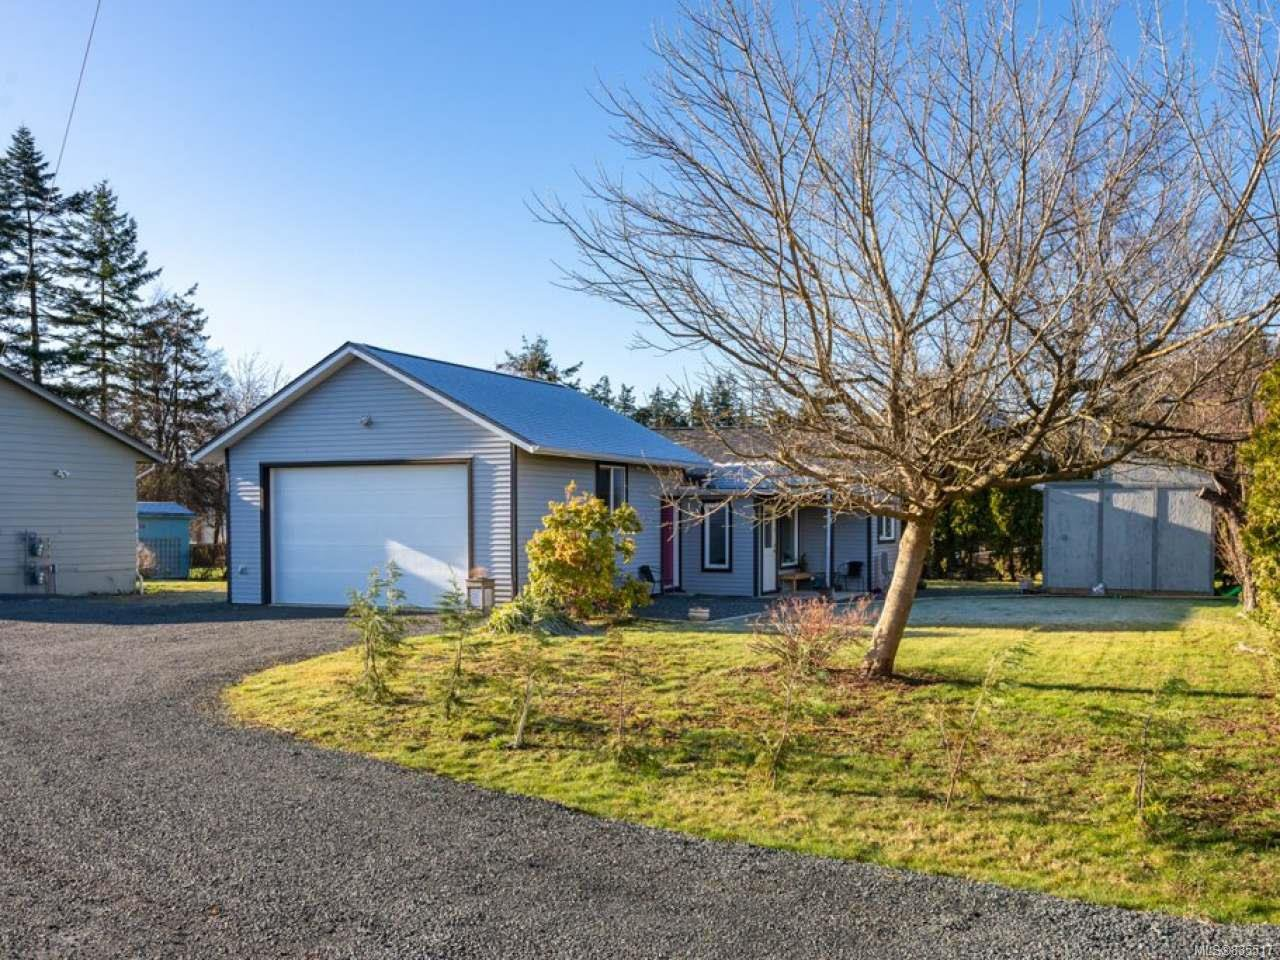 Photo 27: Photos: 109 Larwood Rd in CAMPBELL RIVER: CR Willow Point Single Family Detached for sale (Campbell River)  : MLS®# 835517